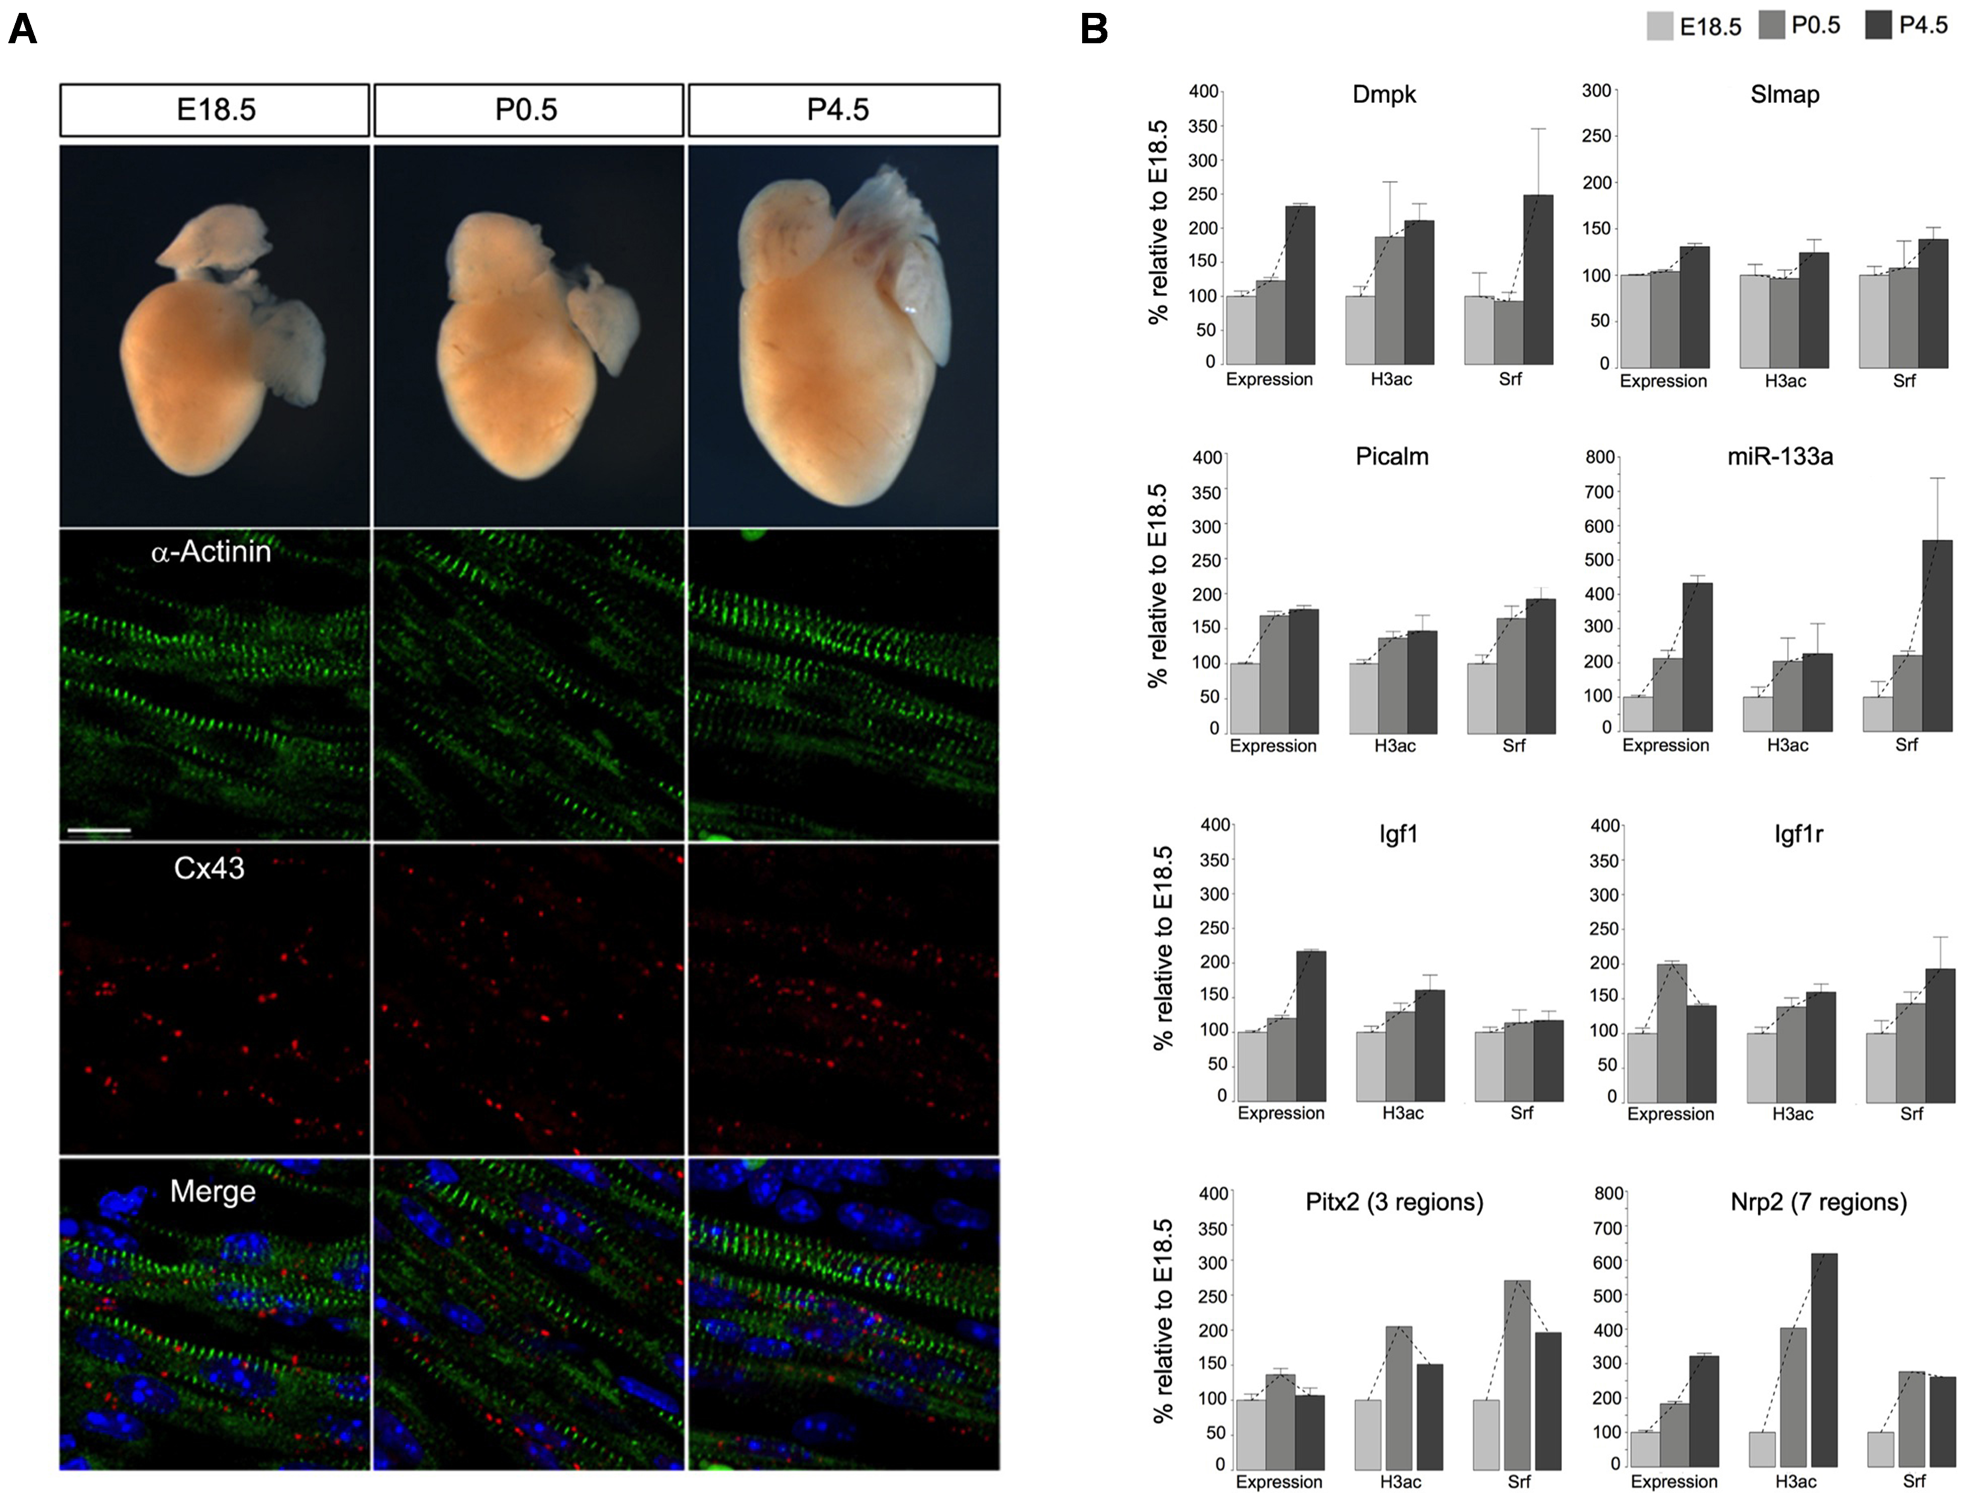 The impact of Srf and H3ac on gene expression in mouse hearts during cardiac maturation.